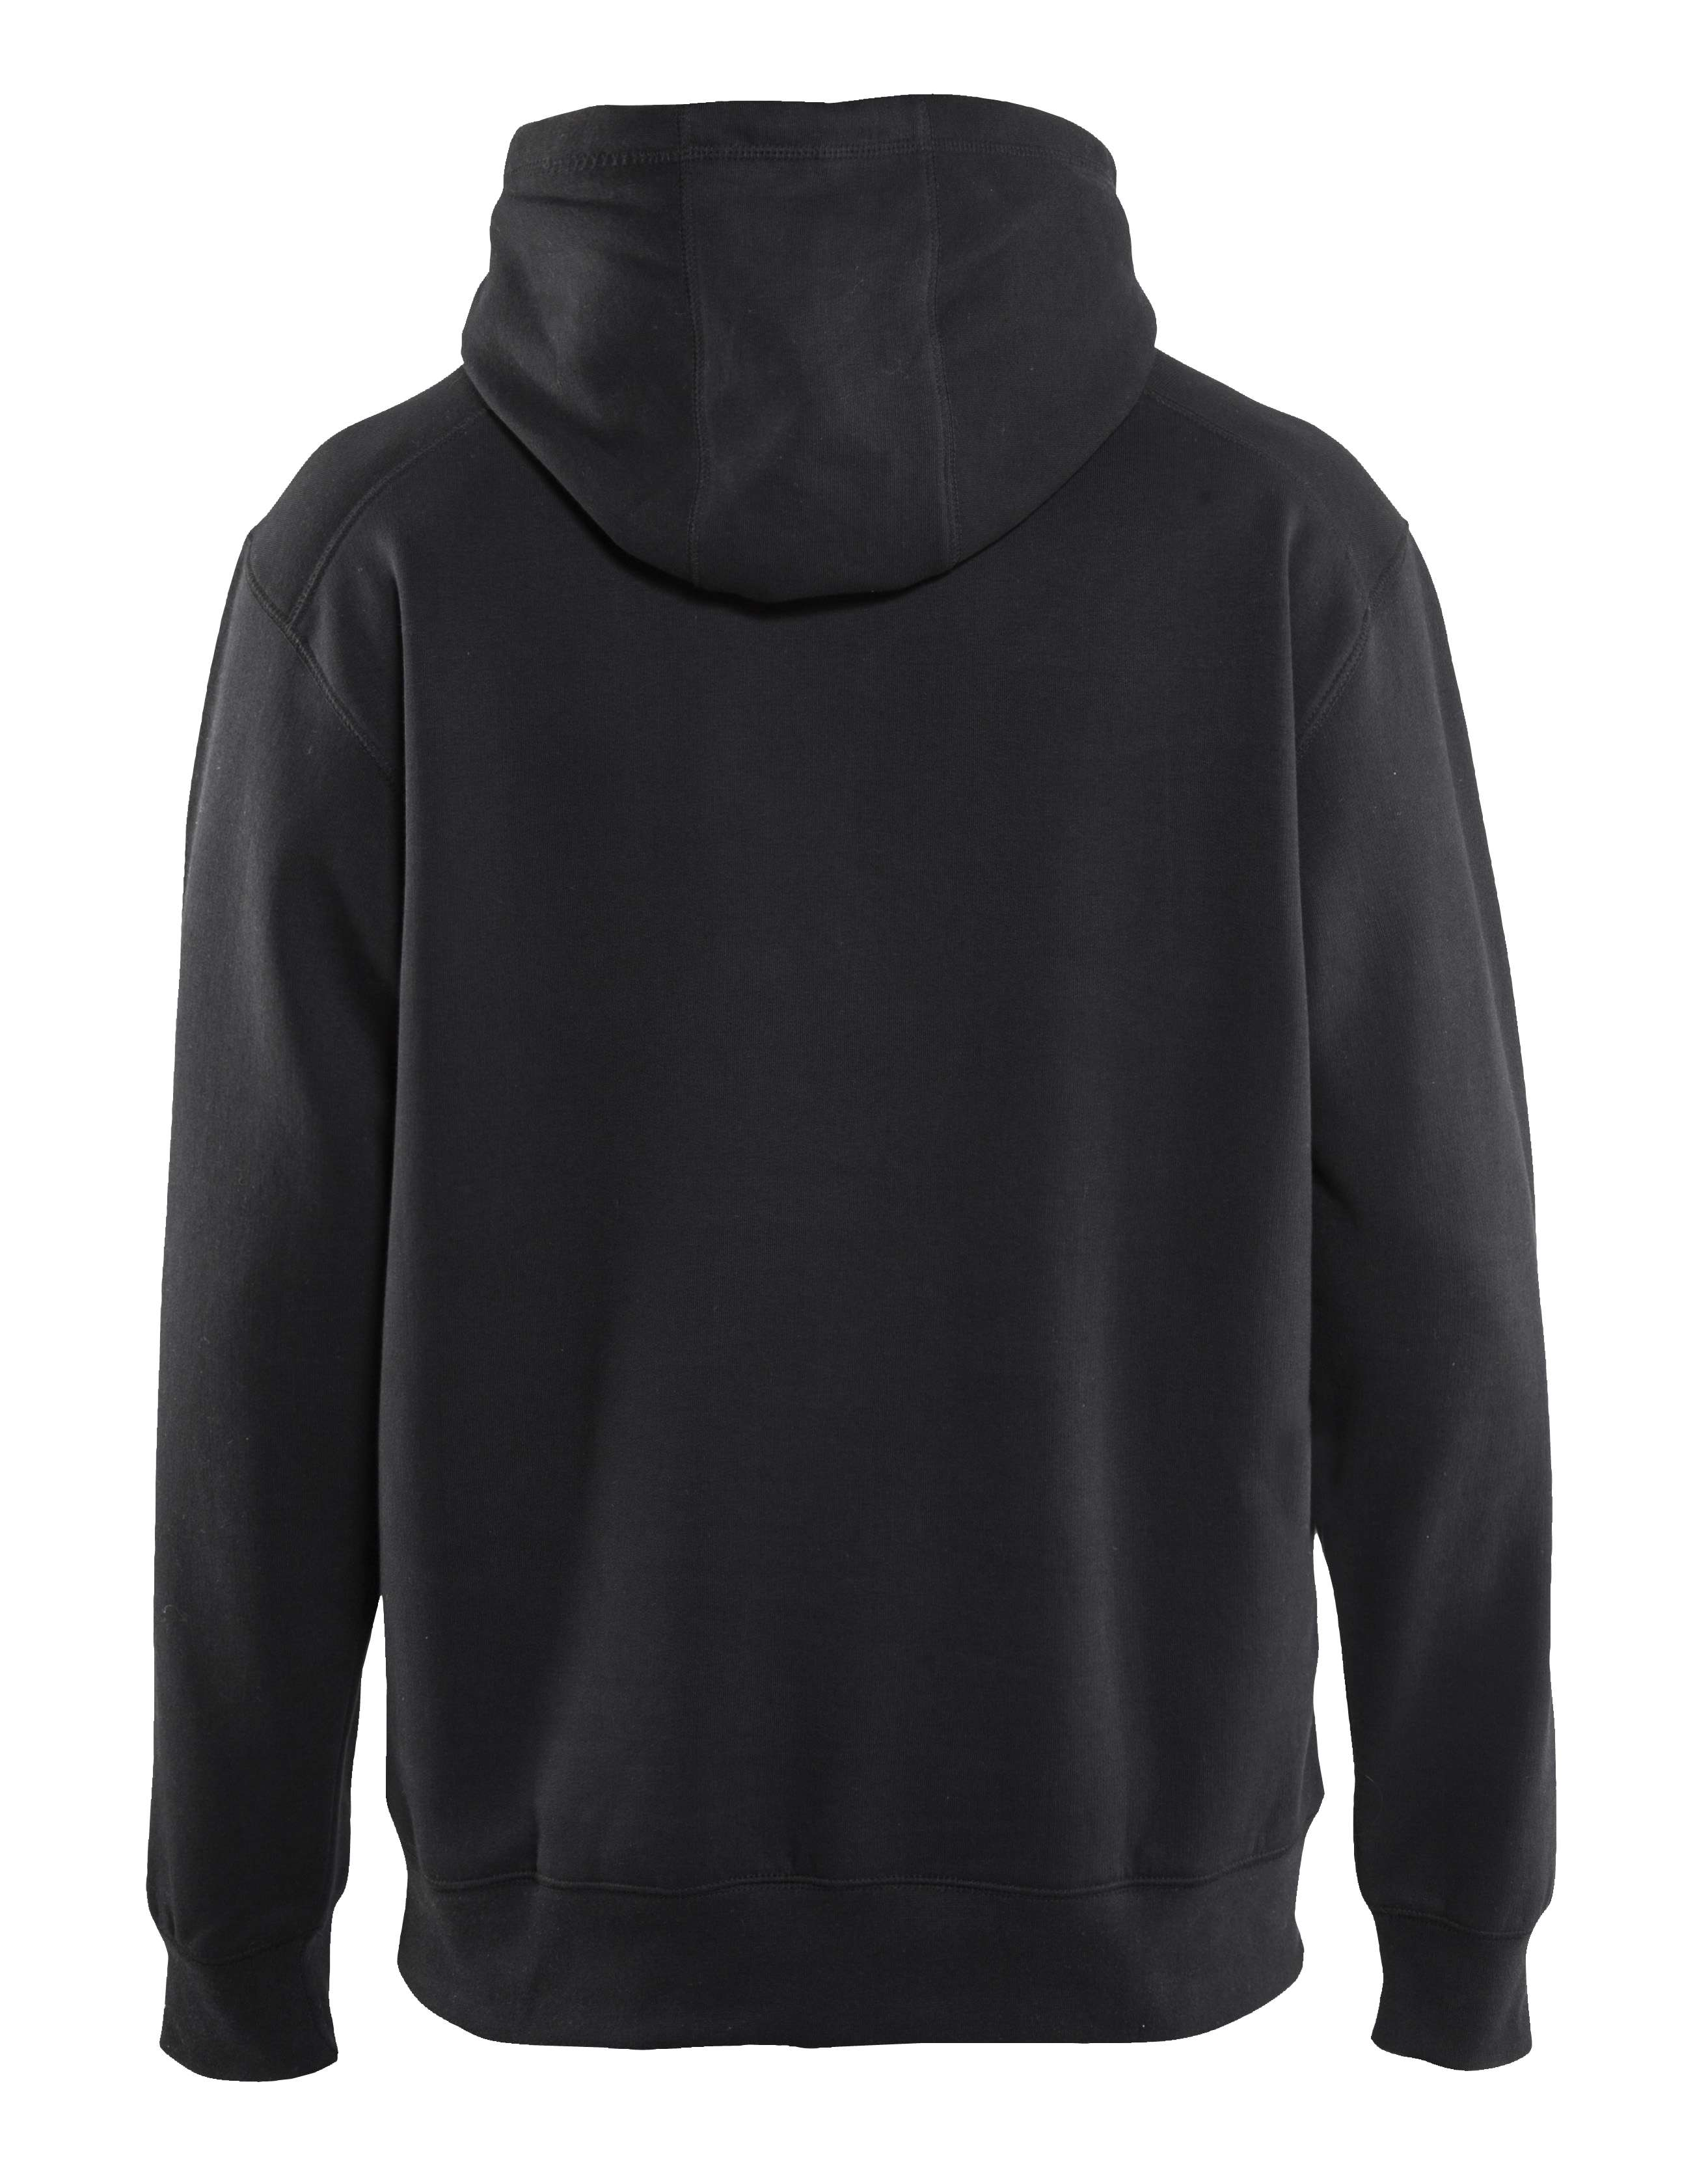 Blaklader Hooded sweatshirts 33961048 zwart(9900)